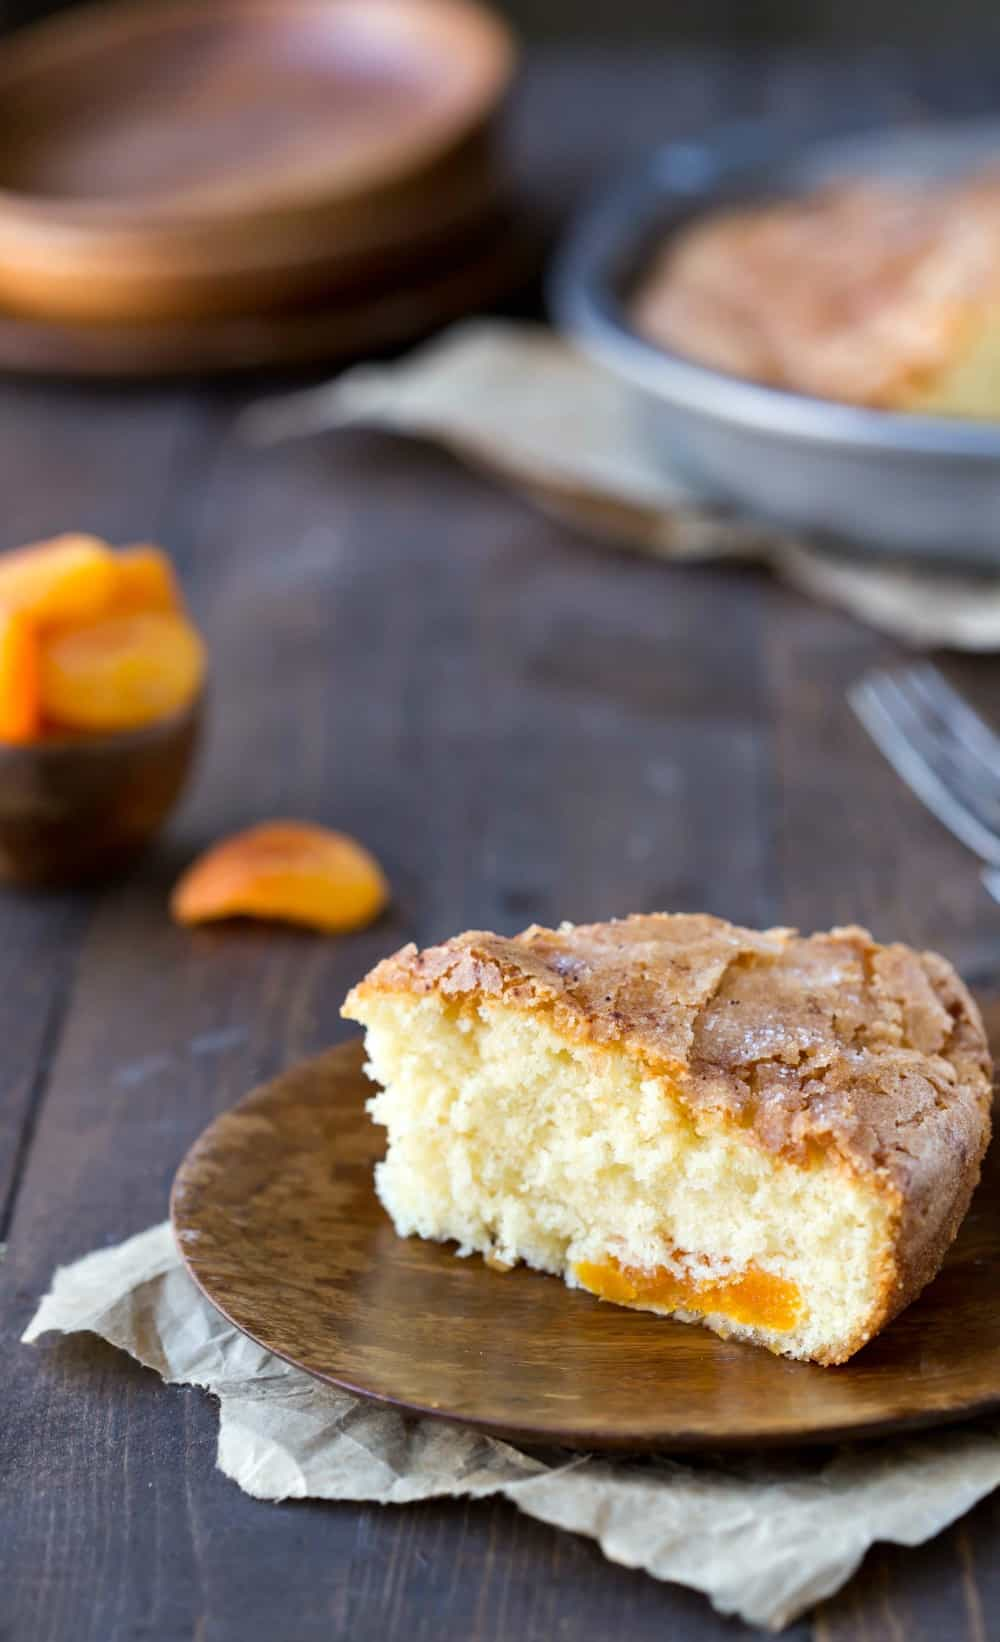 Apricot Kuchen next to a bowl with dried apricots